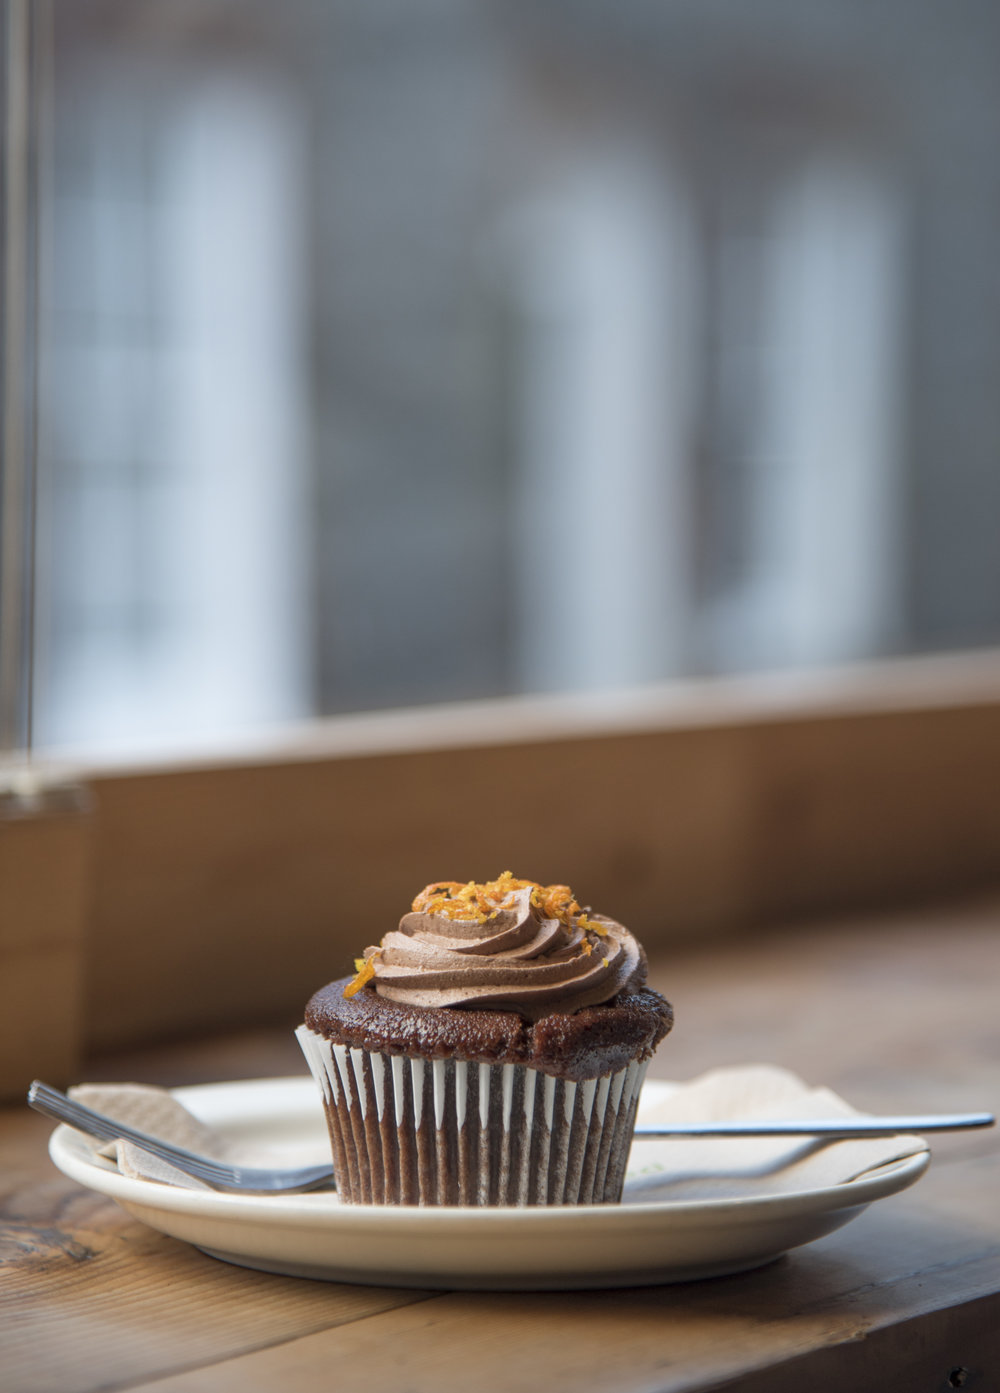 Chocloate and orange cupcake in cafe.jpg